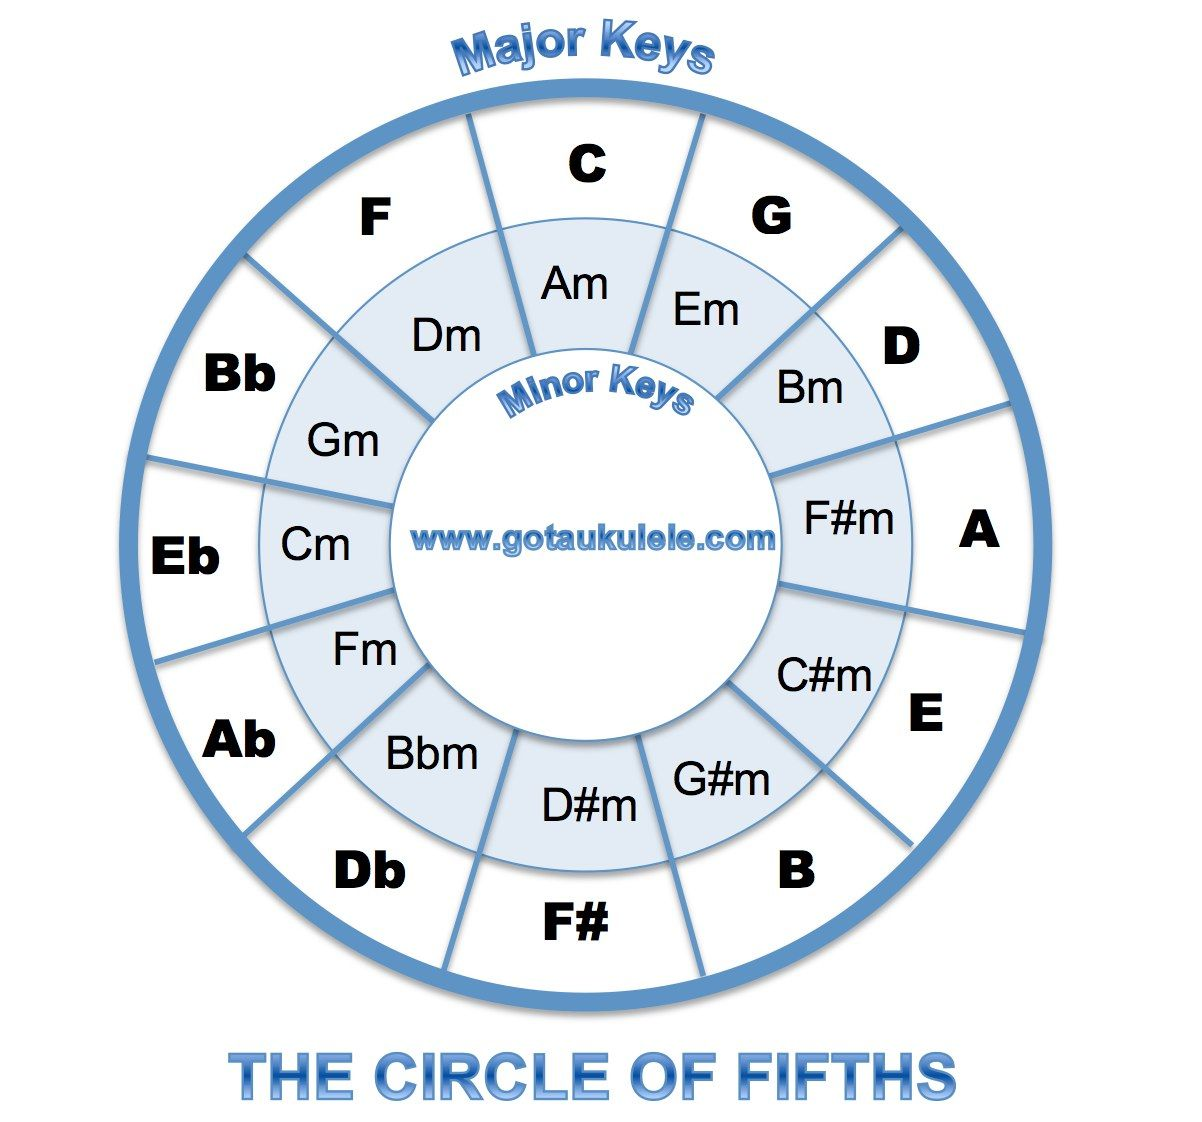 Complete chords of